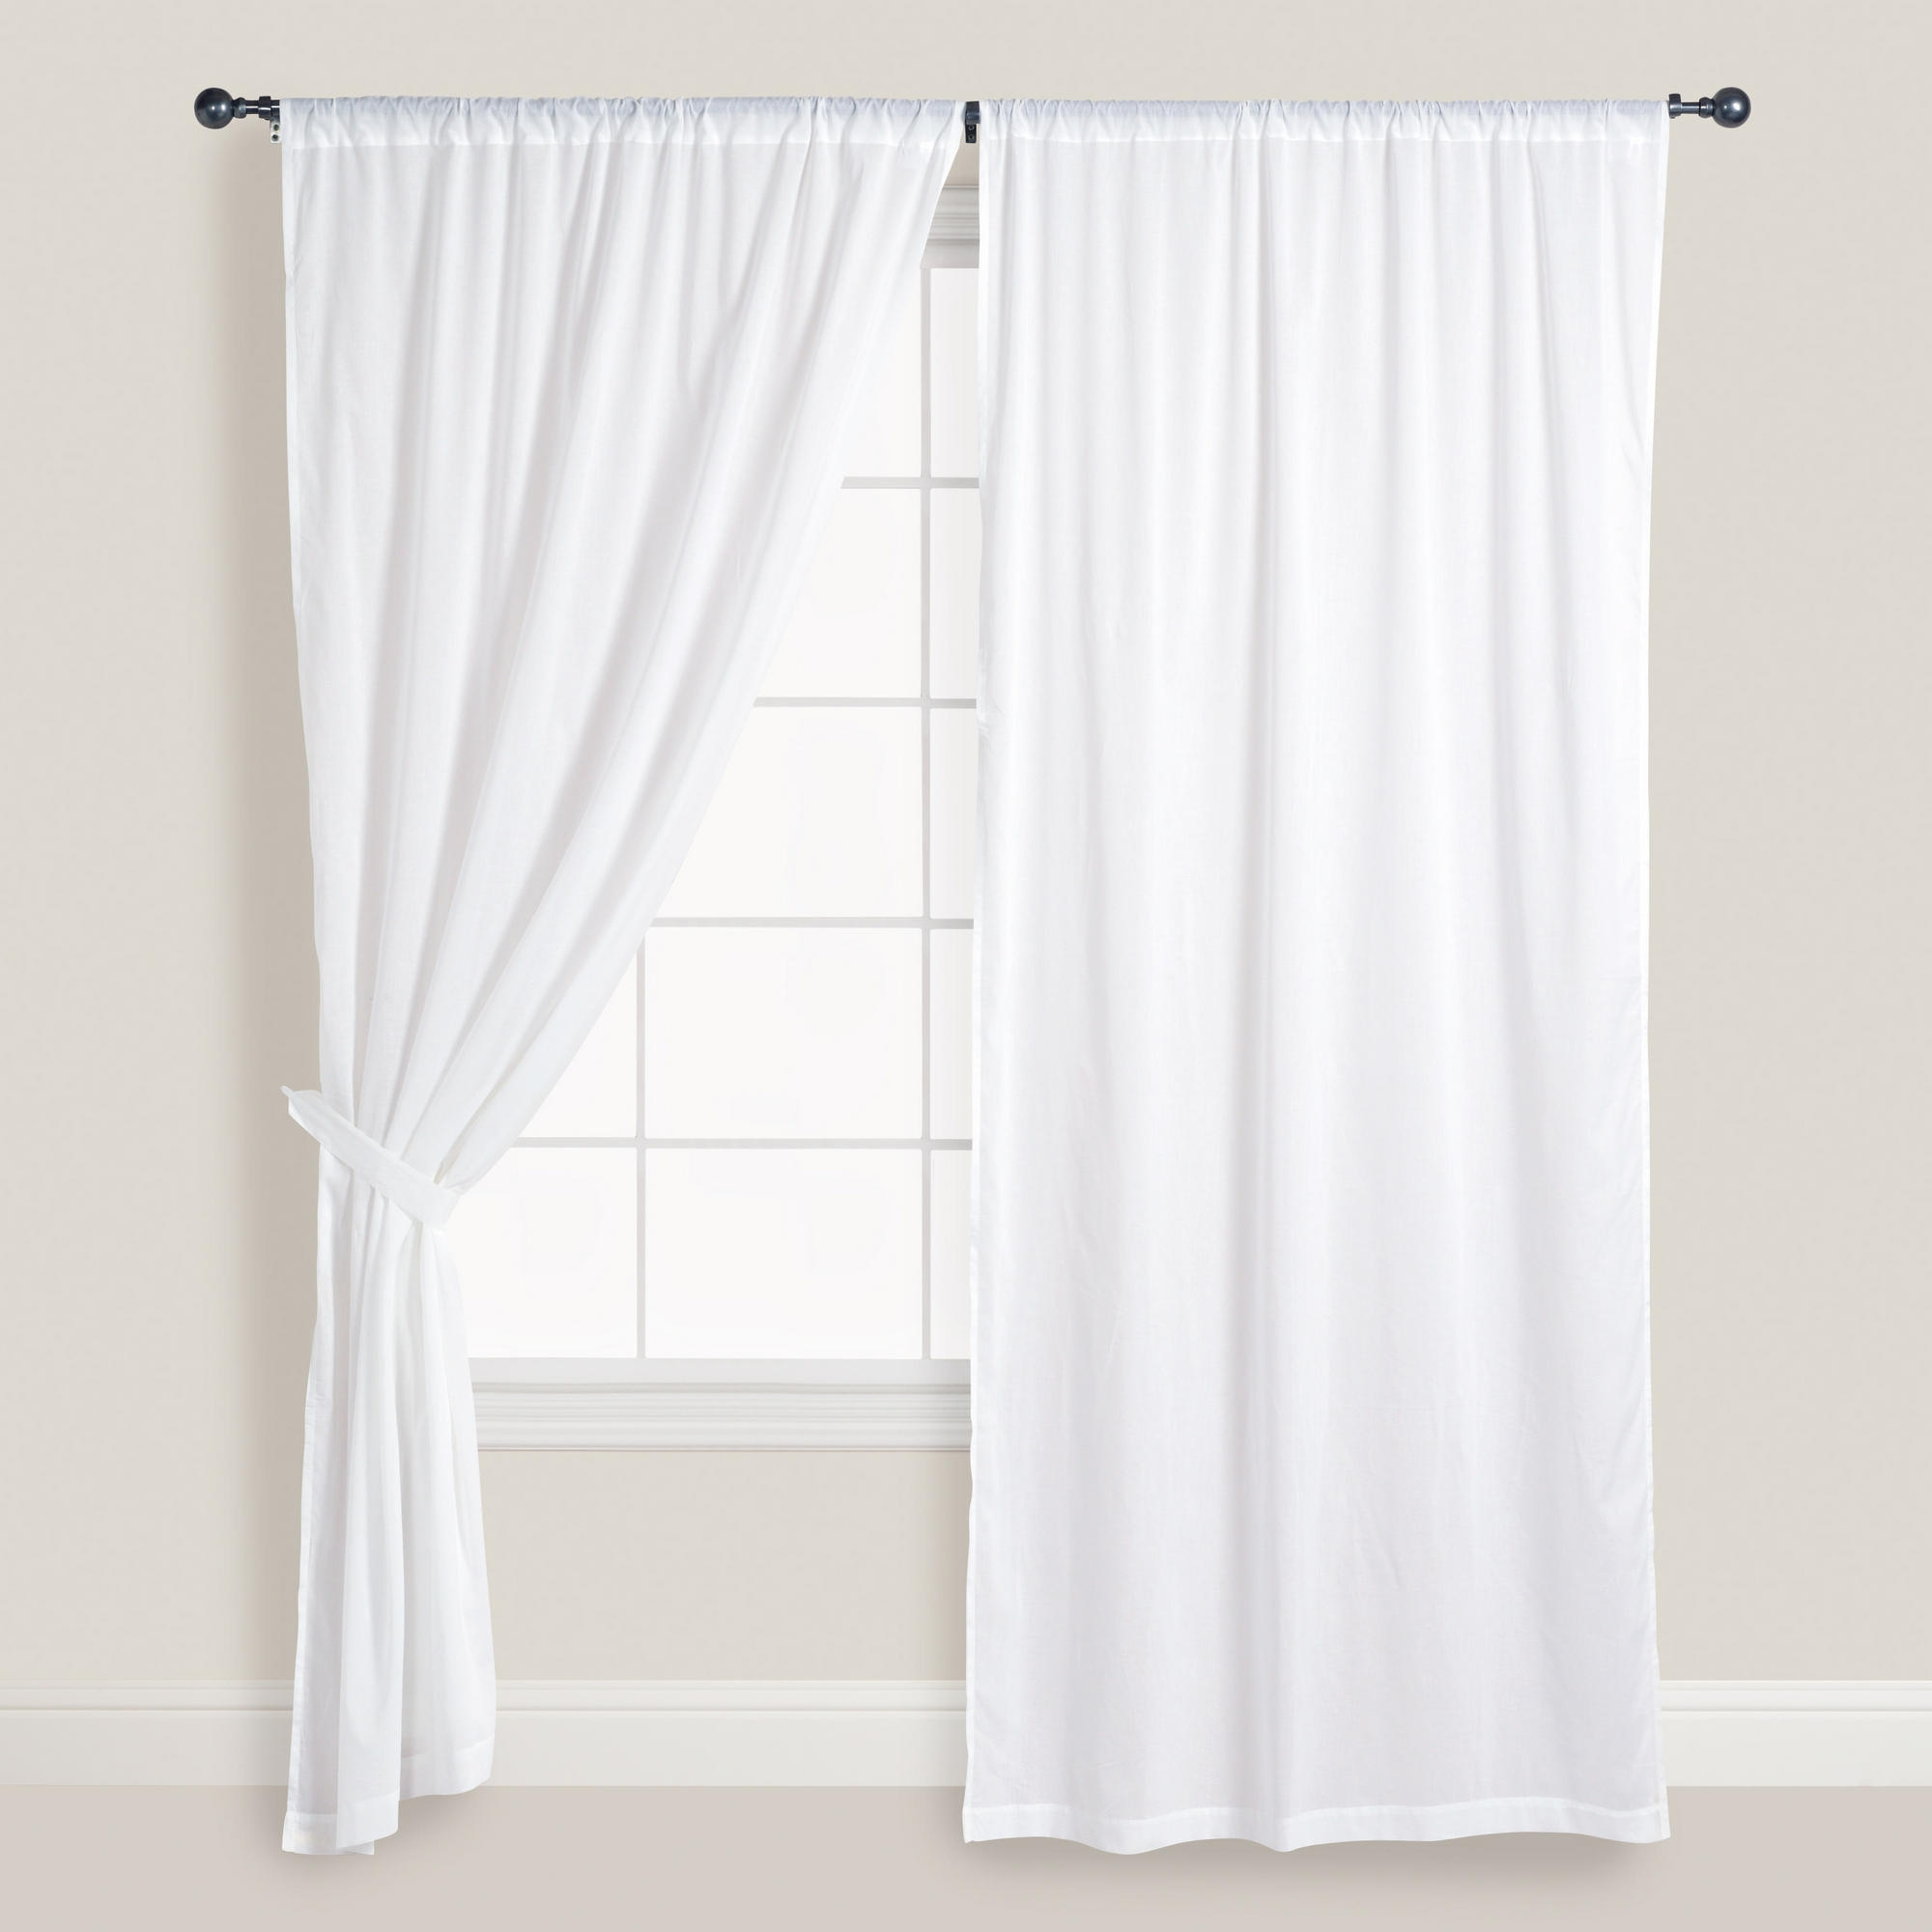 White Cotton Voile Curtains Set Of 2 Front Windows Nature And For White Sheer Cotton Curtains (Image 13 of 15)